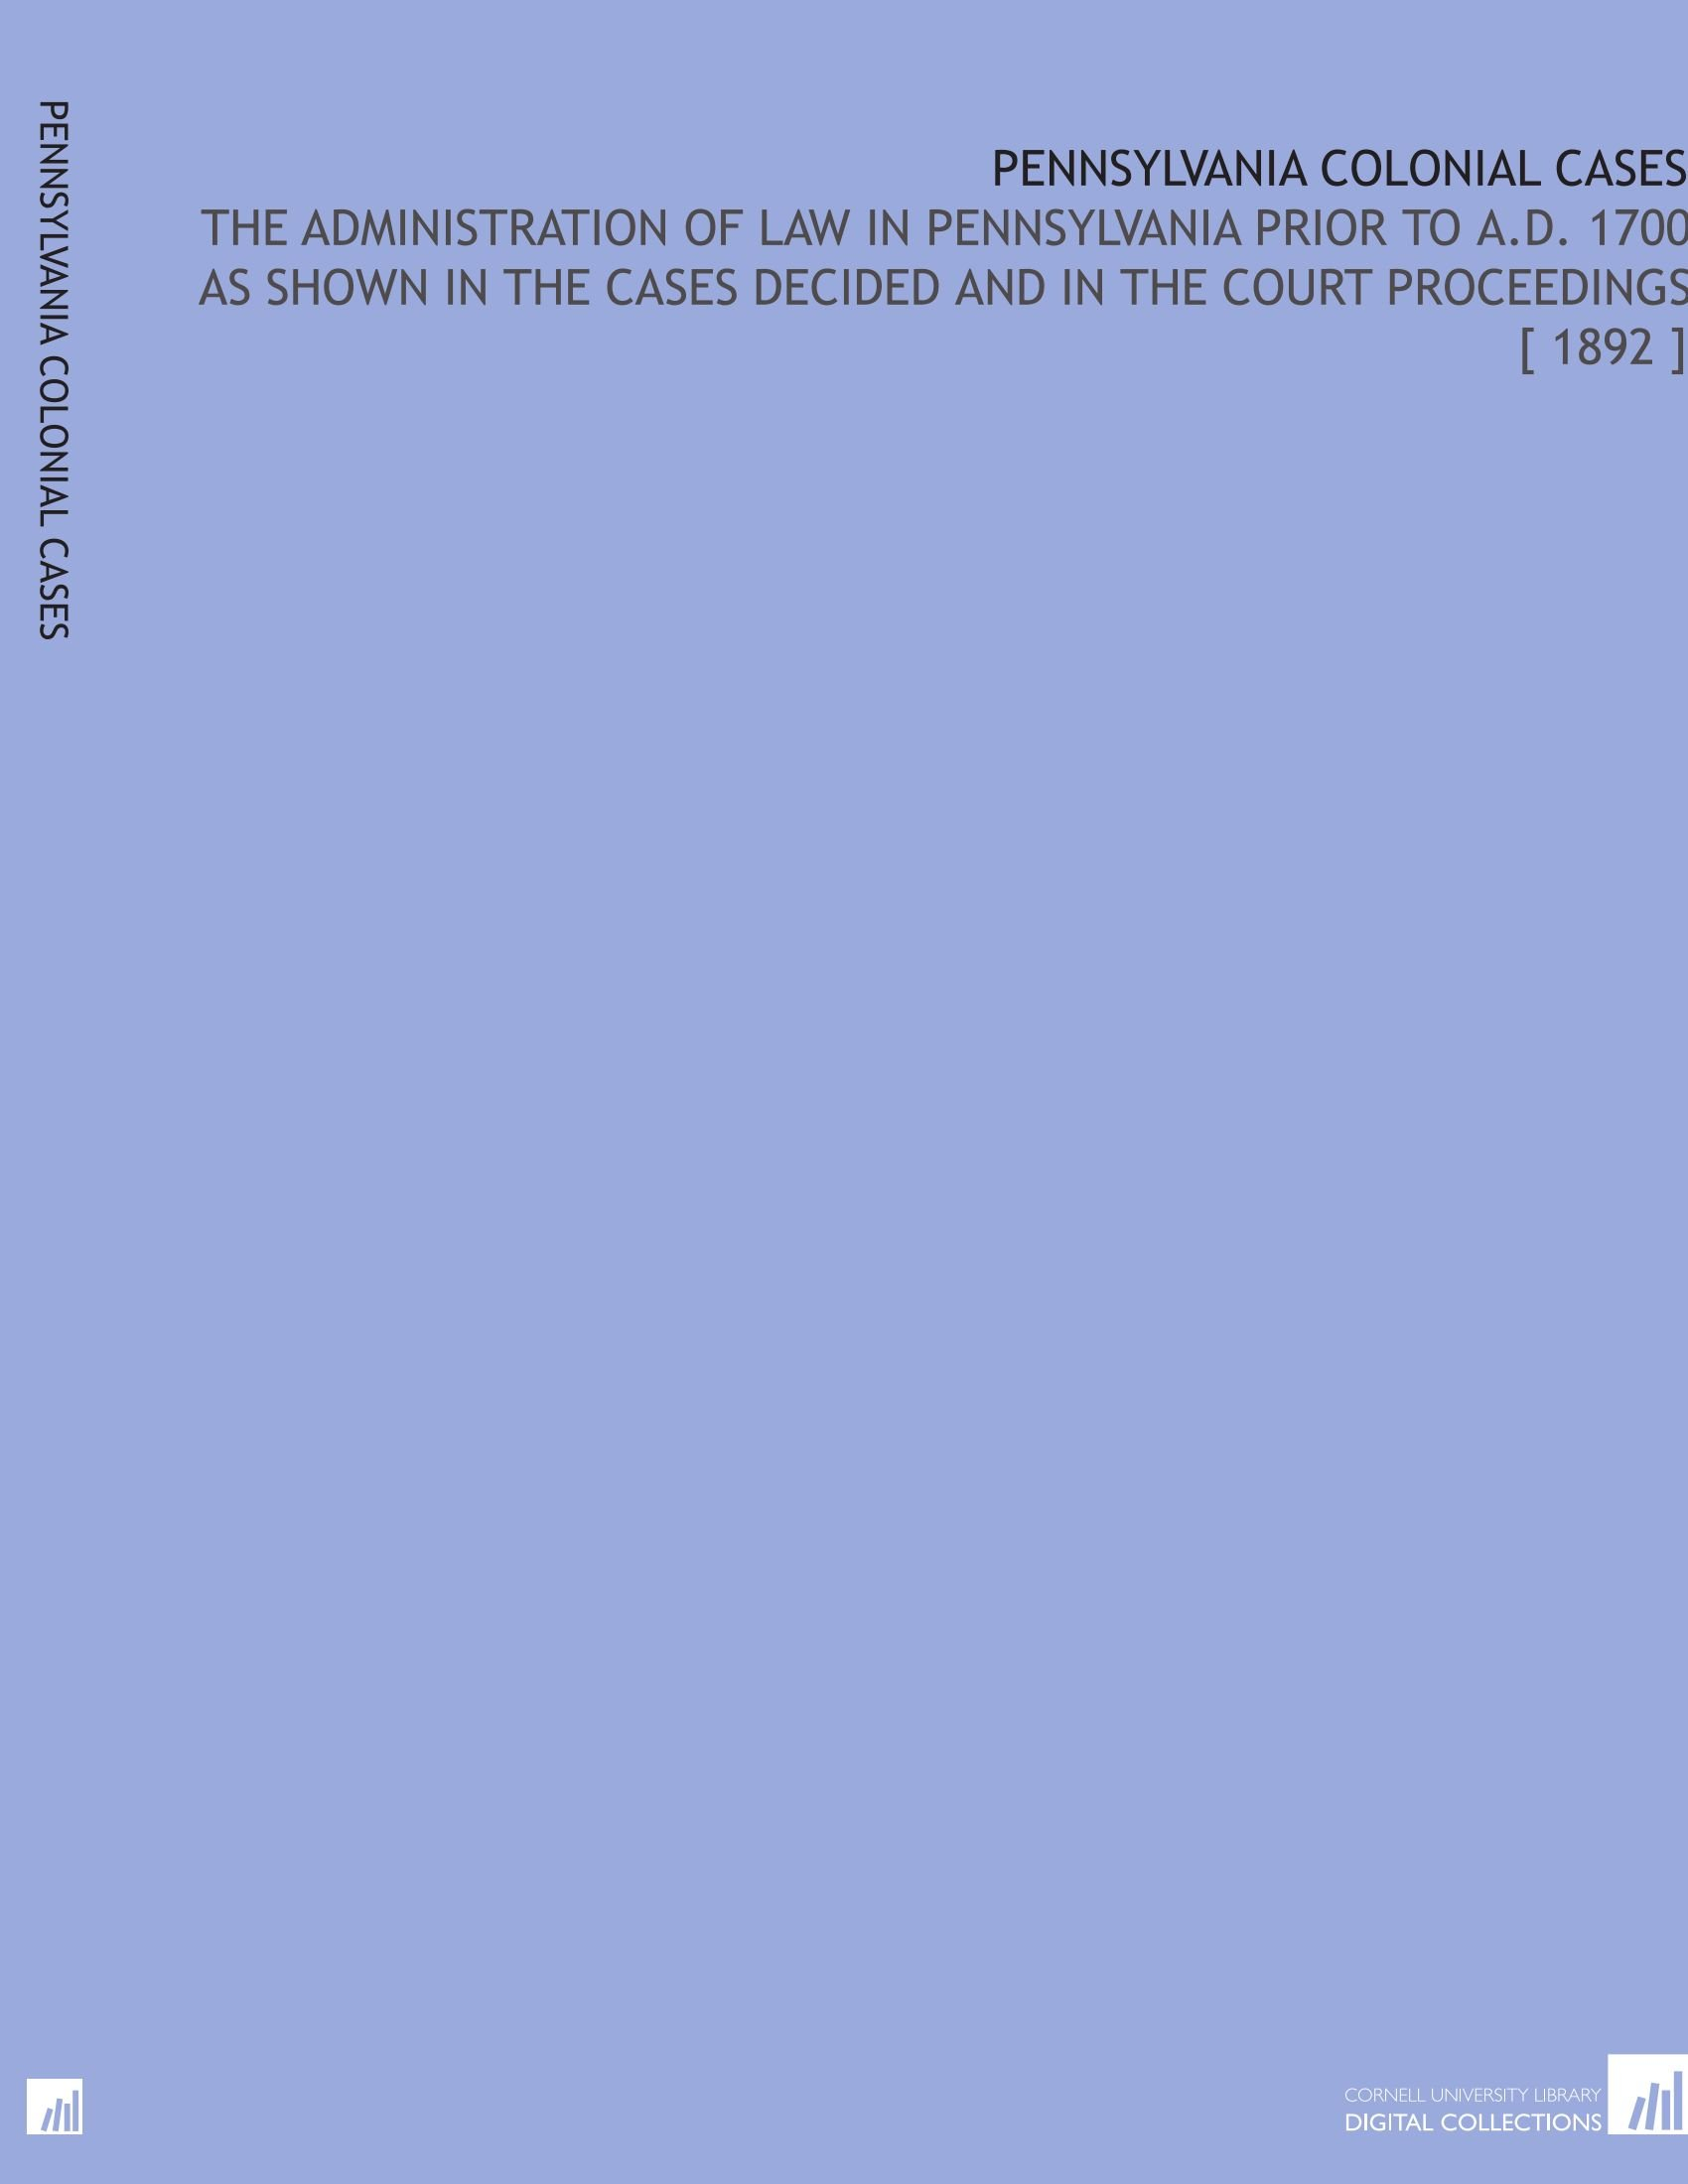 Pennsylvania Colonial Cases: The Administration of Law in Pennsylvania Prior to a.D. 1700 as Shown in the Cases Decided and in the Court Proceedings [ 1892 ] ebook